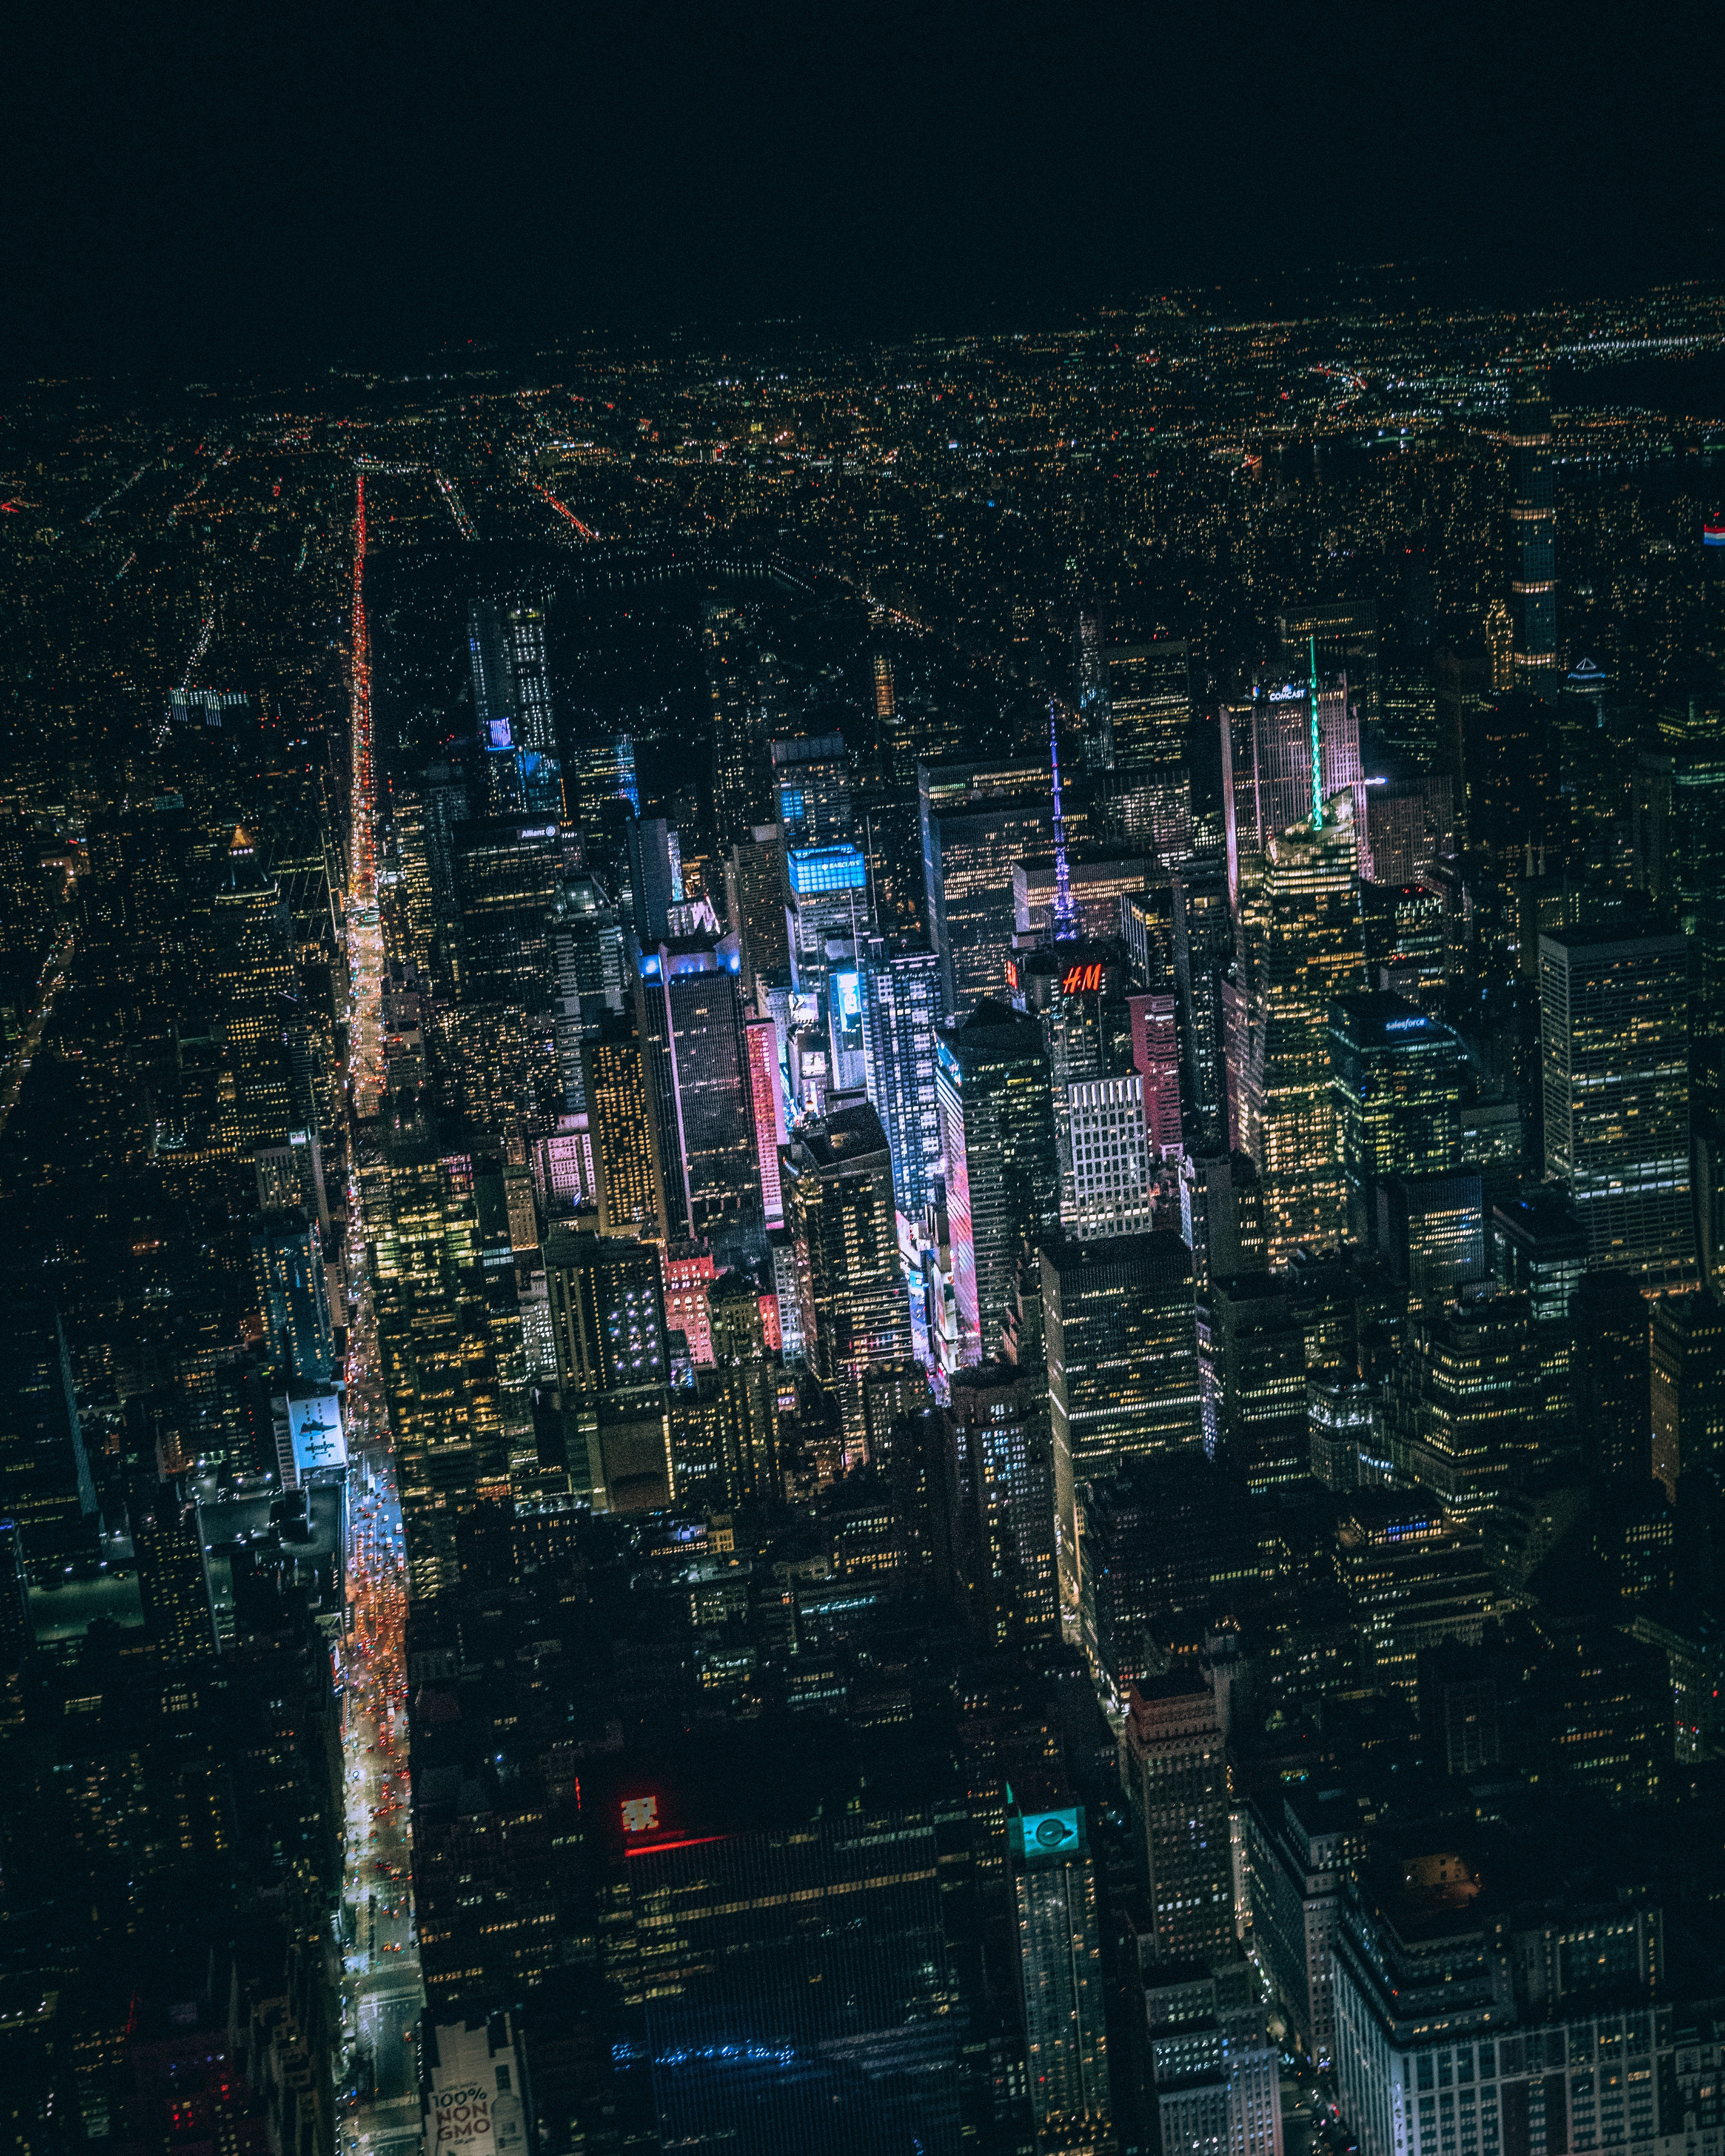 Dark City Pictures Hd Download Free Images On Unsplash